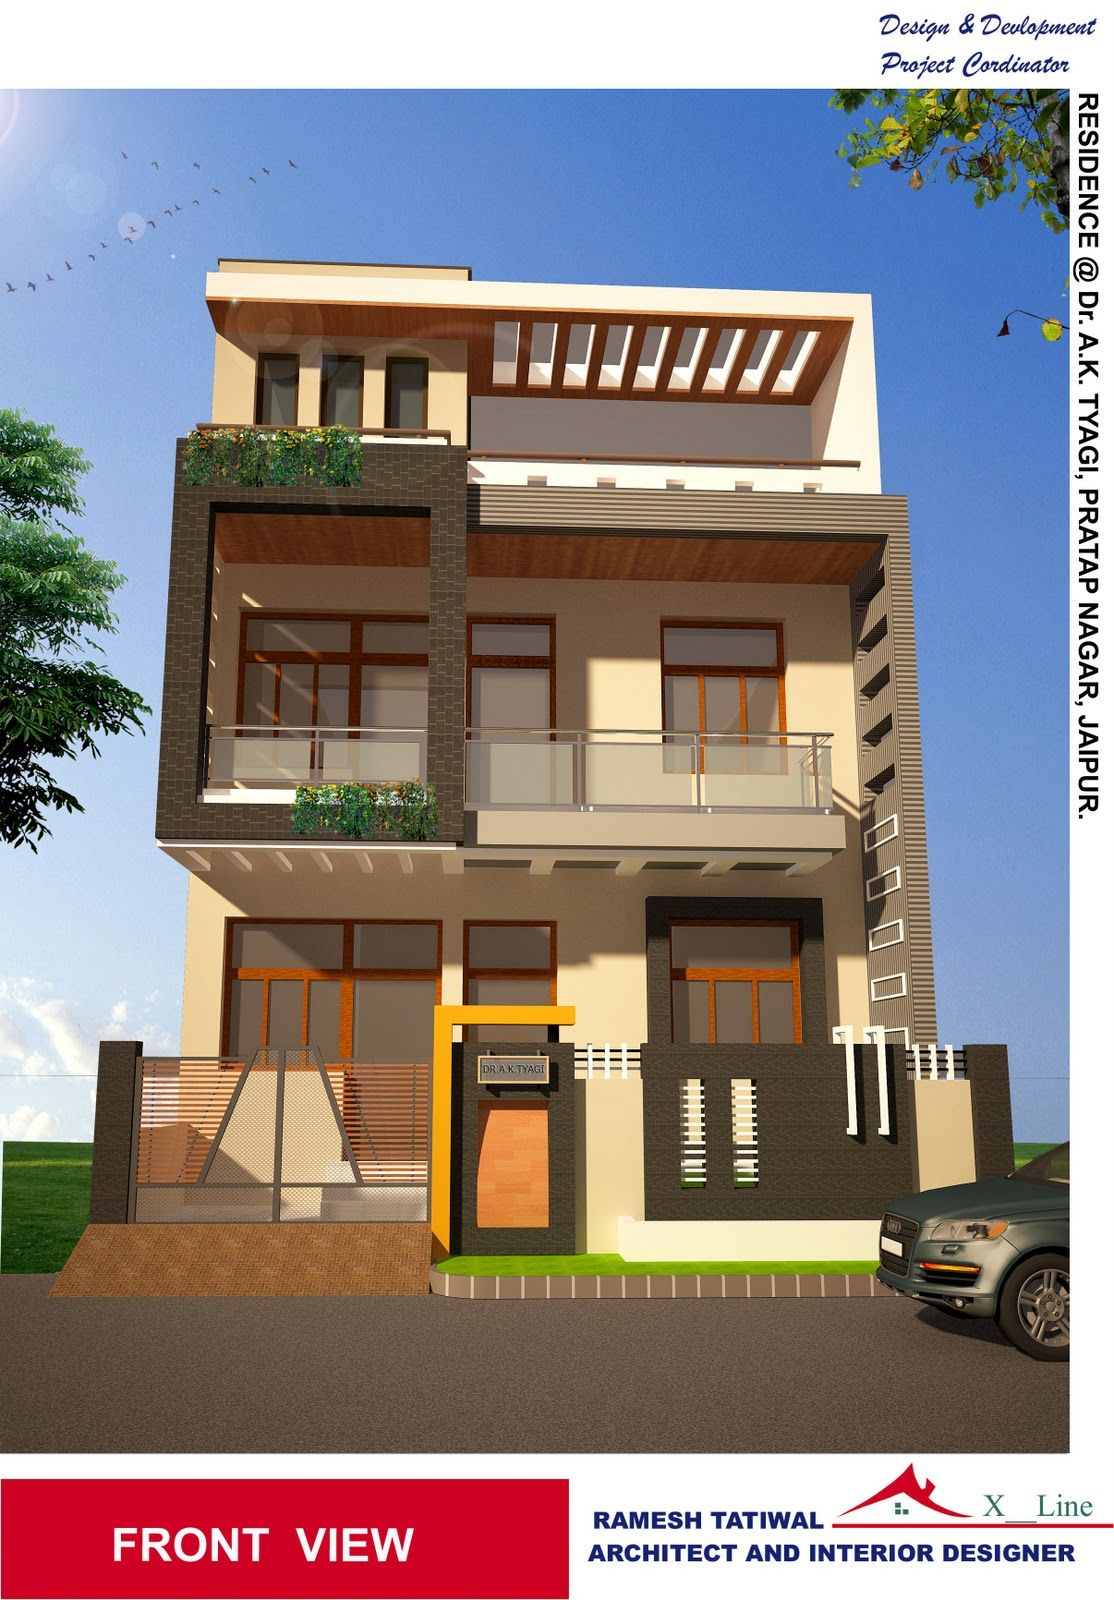 Housedesigns modern indian home architecture design from Indian house structure design